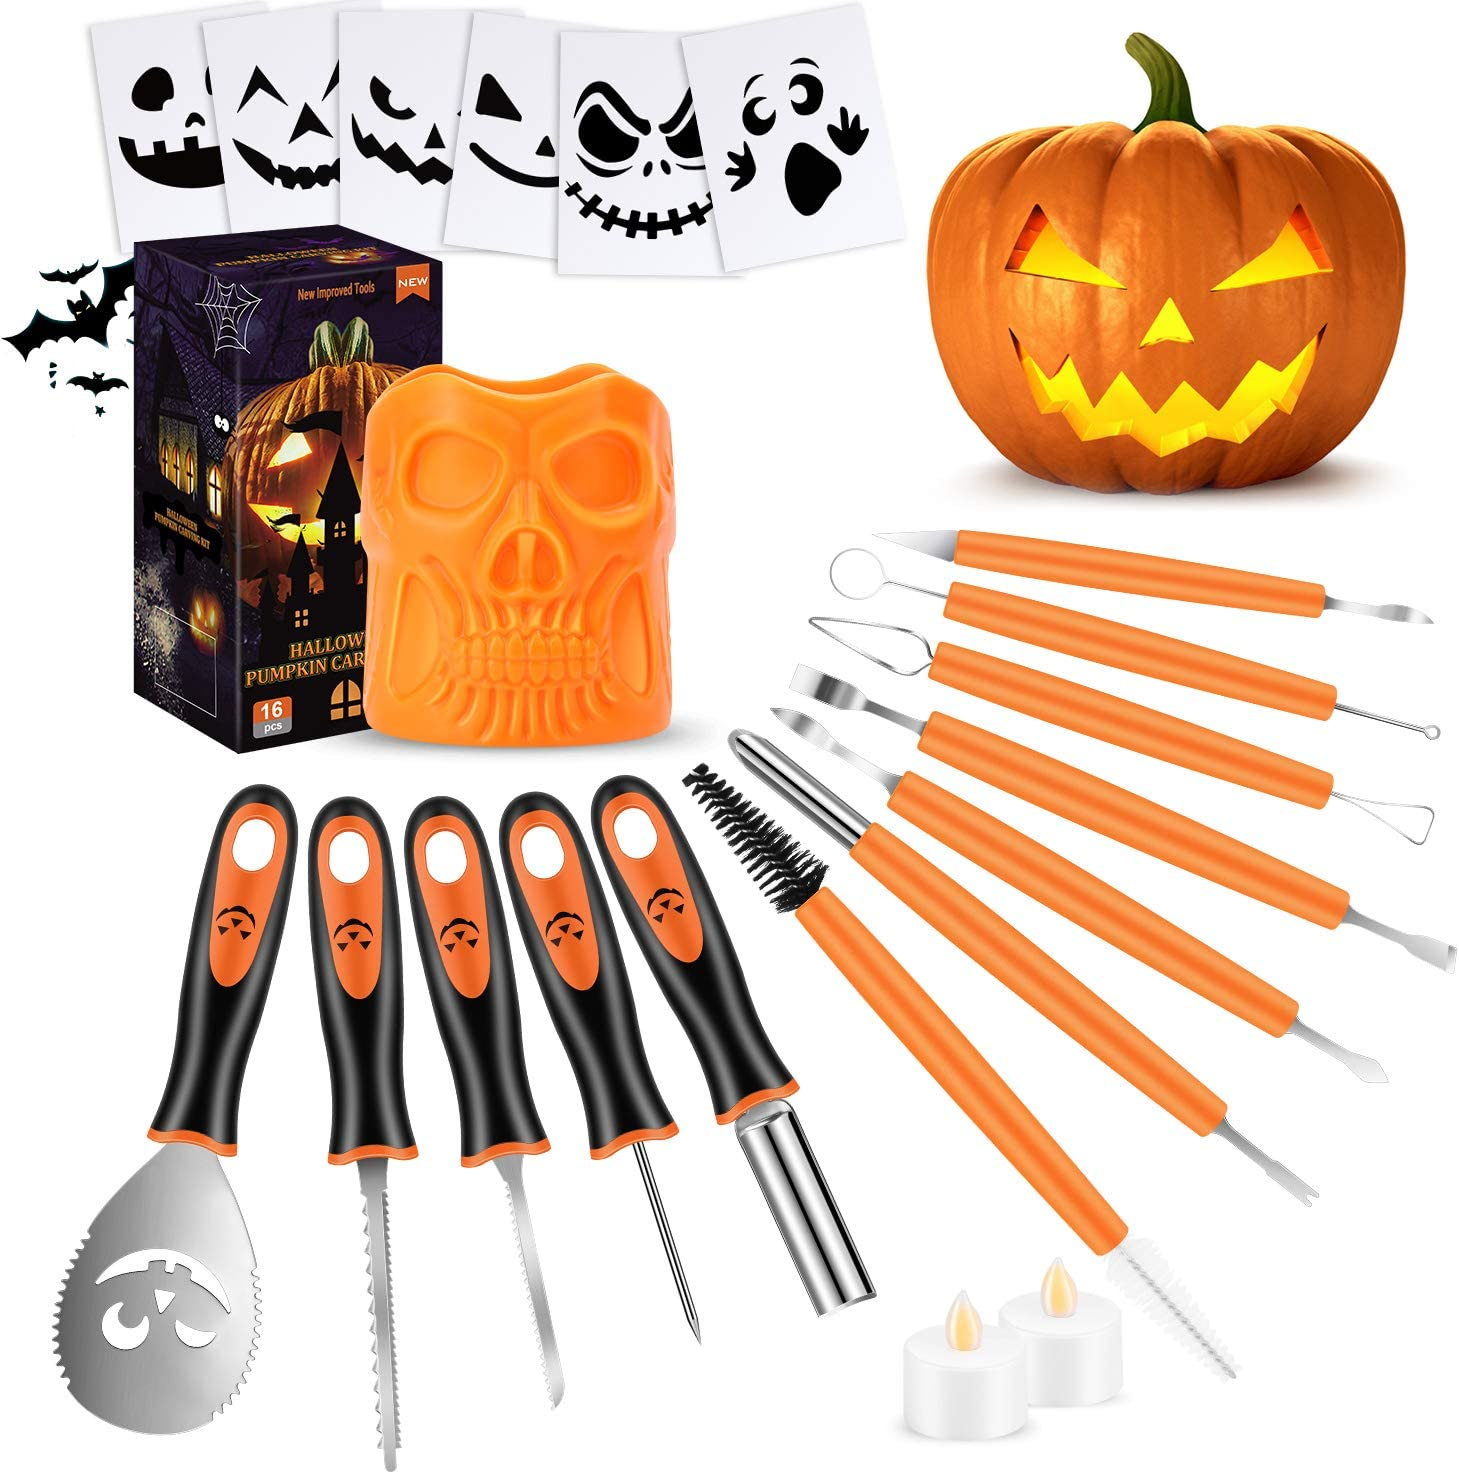 21 PCS Pumpkin Carving Tools Kit